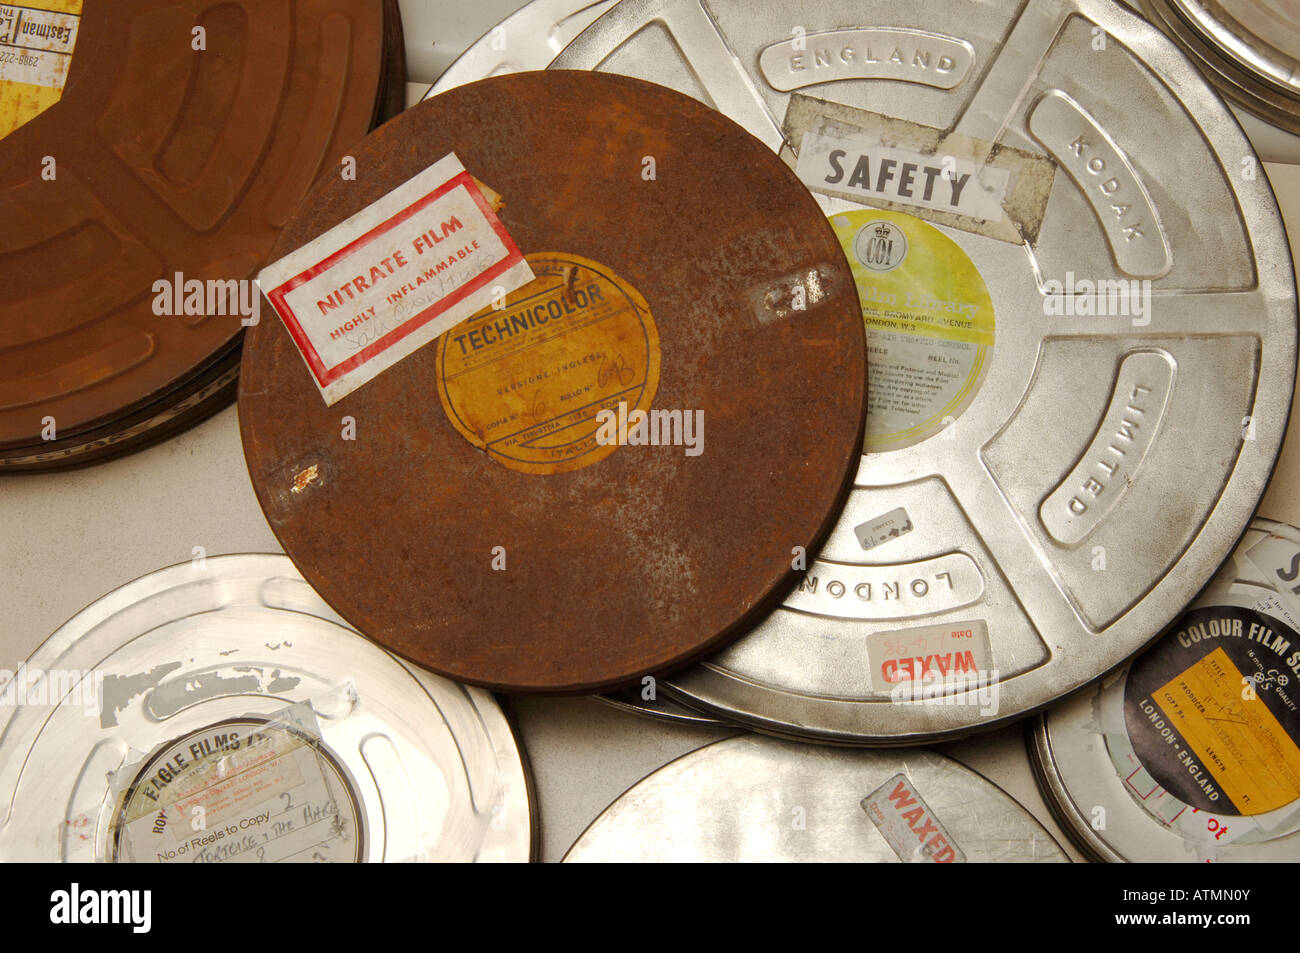 Old film canisters containing nitrate technicolor films - Stock Image